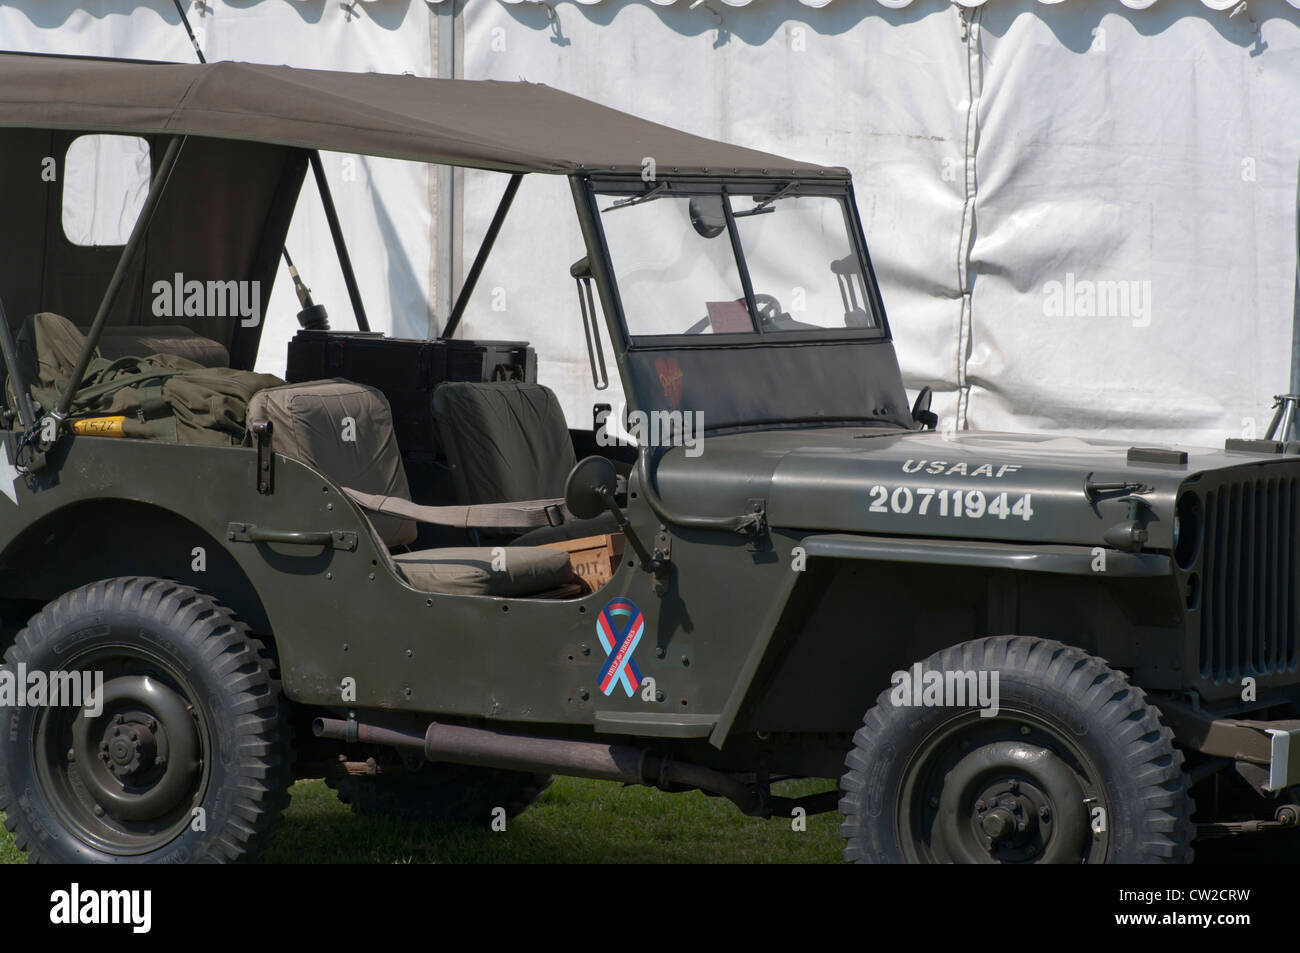 USAAF US Air Force Jeep - Stock Image